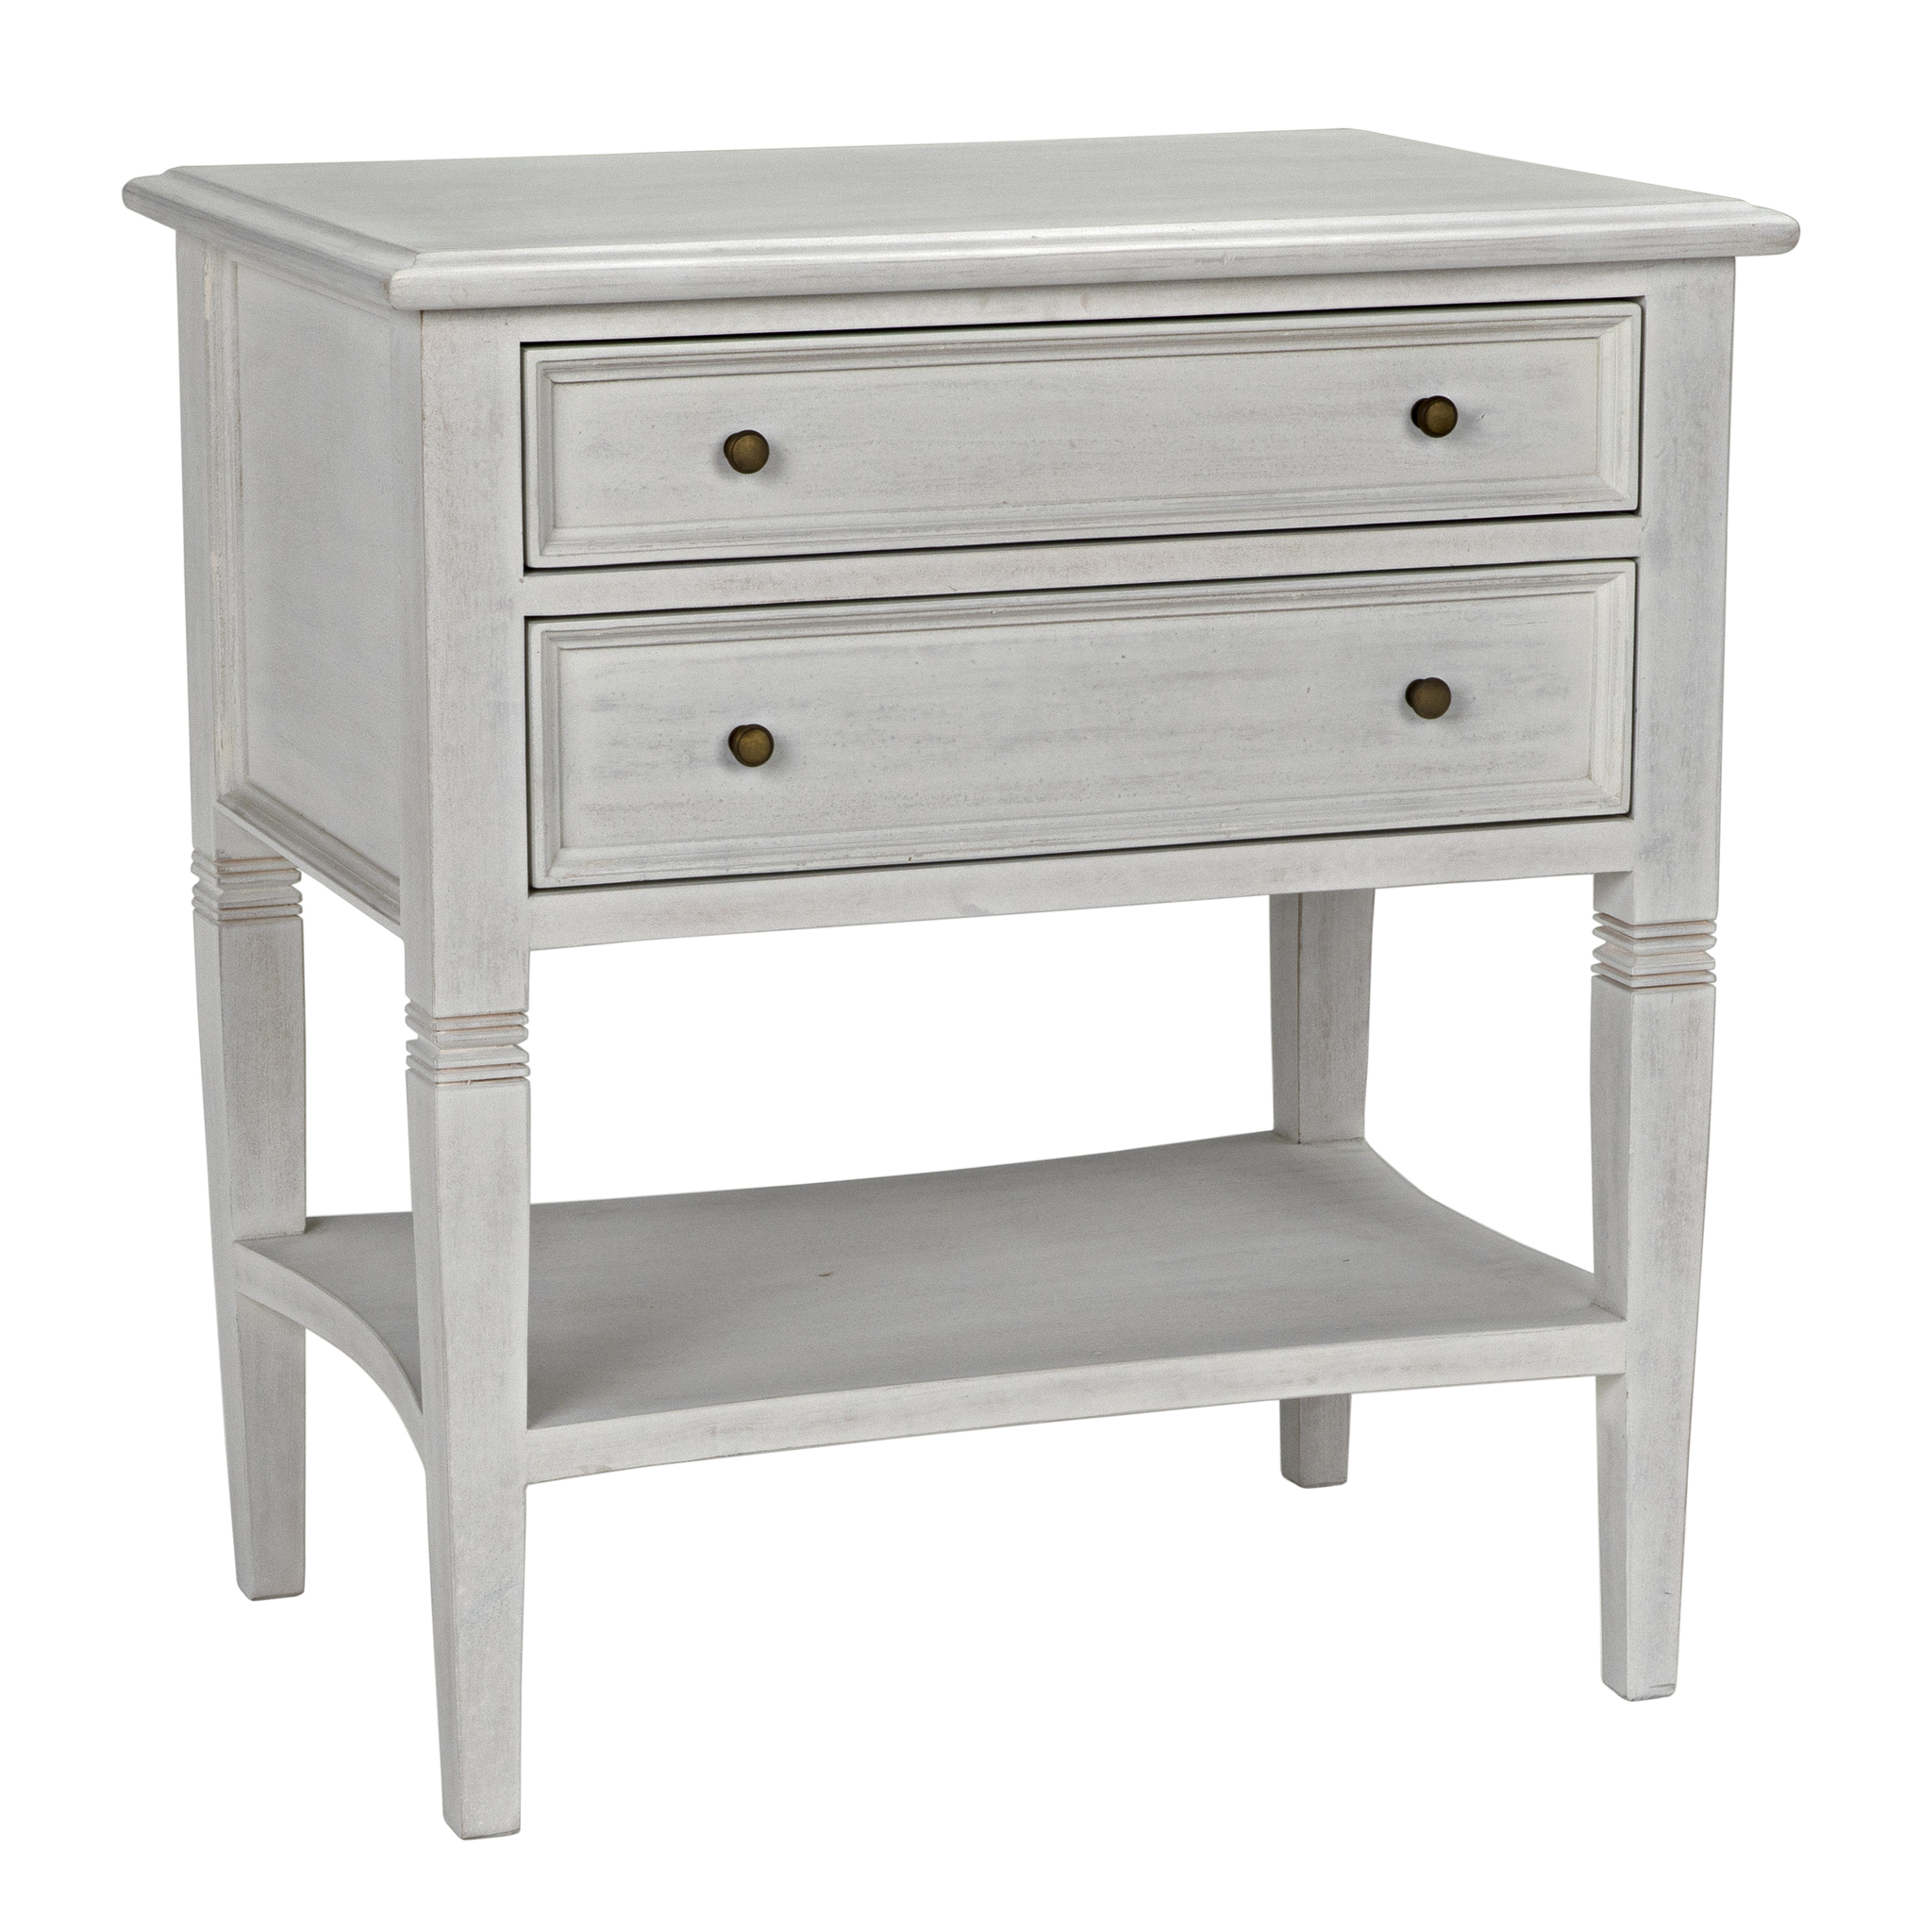 Side Table With Drawer - Qs oxford 2 drawer side table white wash